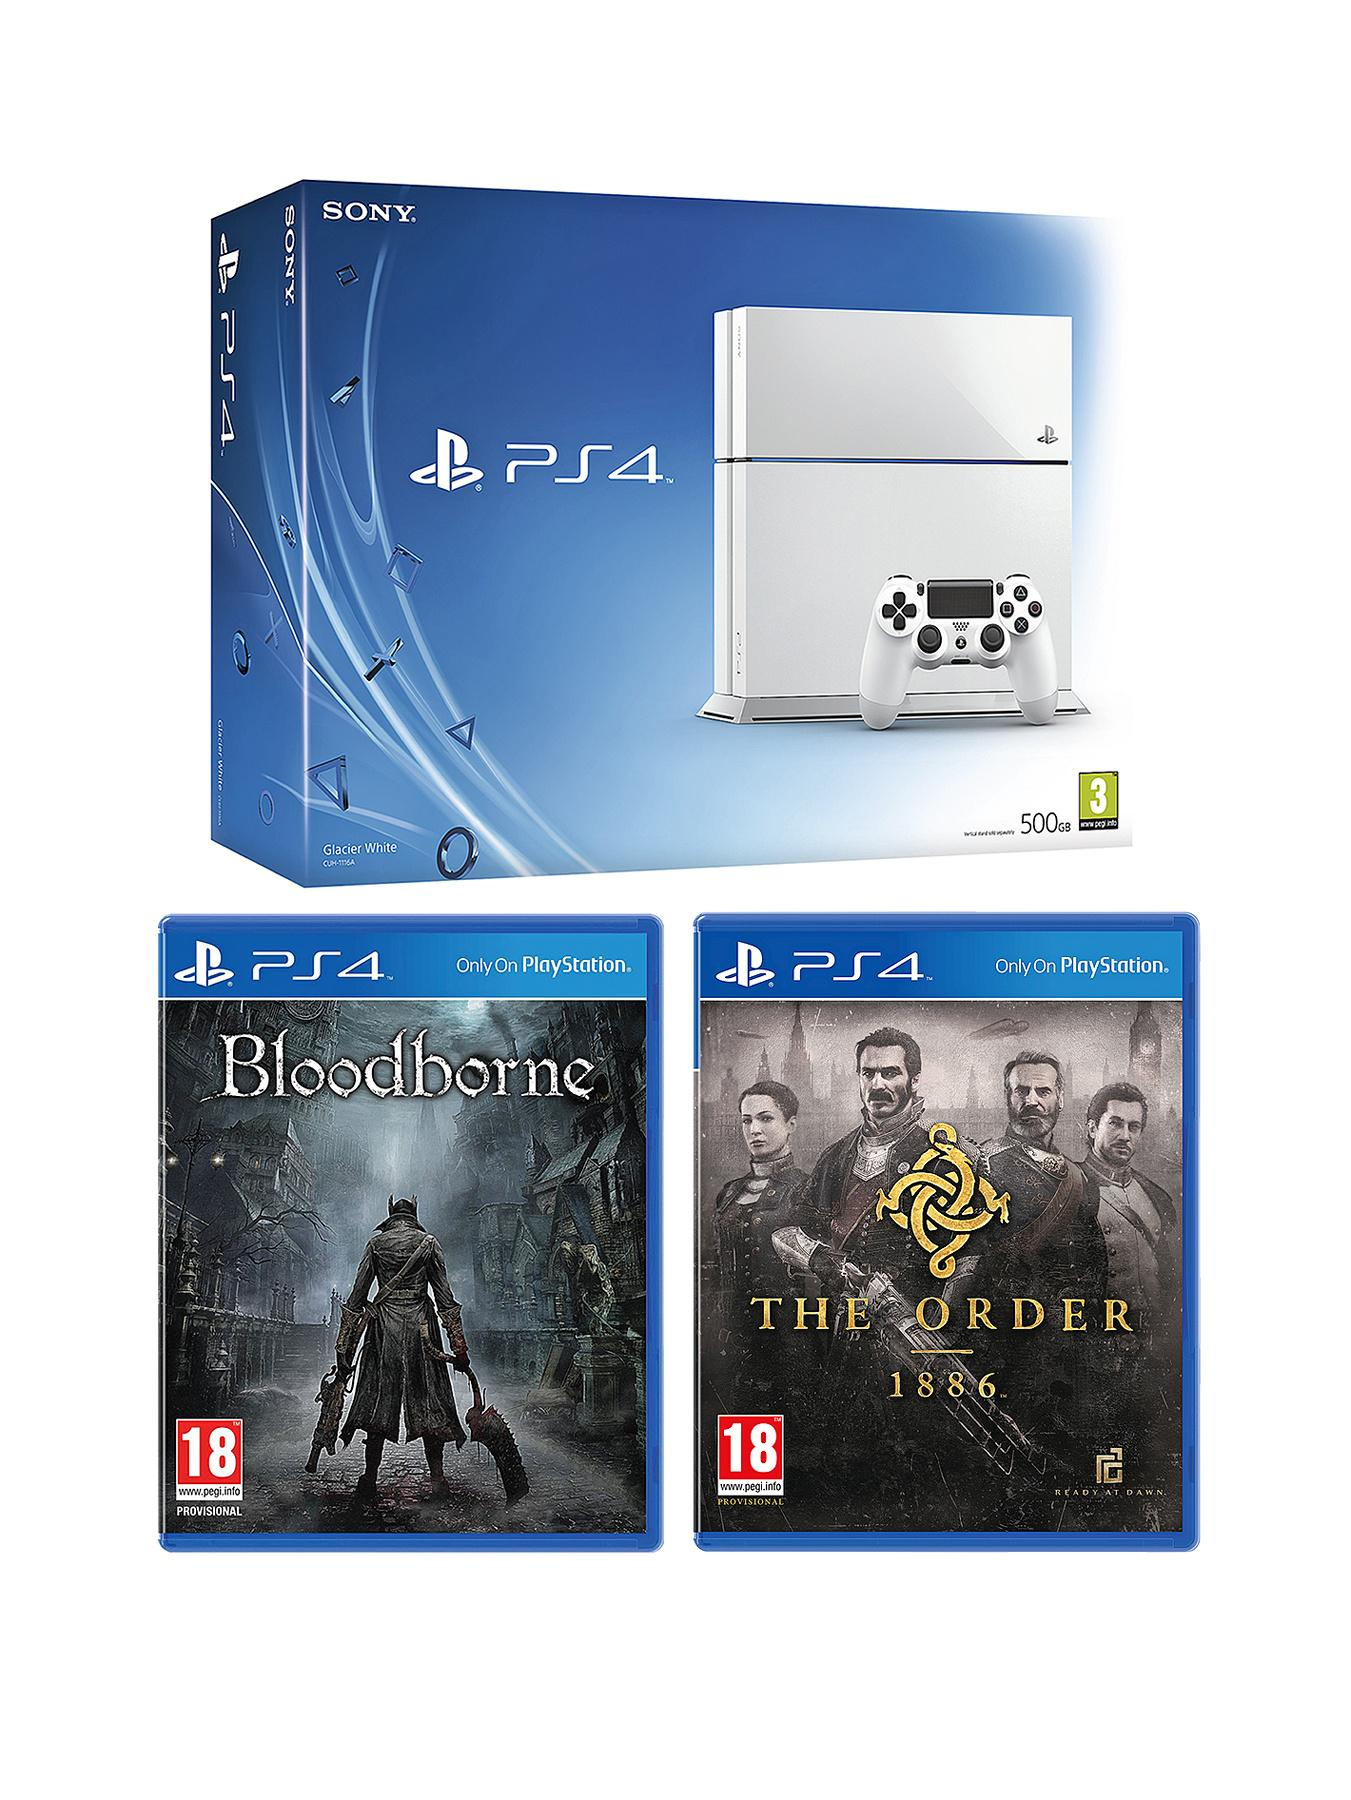 Playstation 4 White Console with The Order: 1886, Bloodborne and Optional 12 Months Playstation Plus or DualShock4 Controller